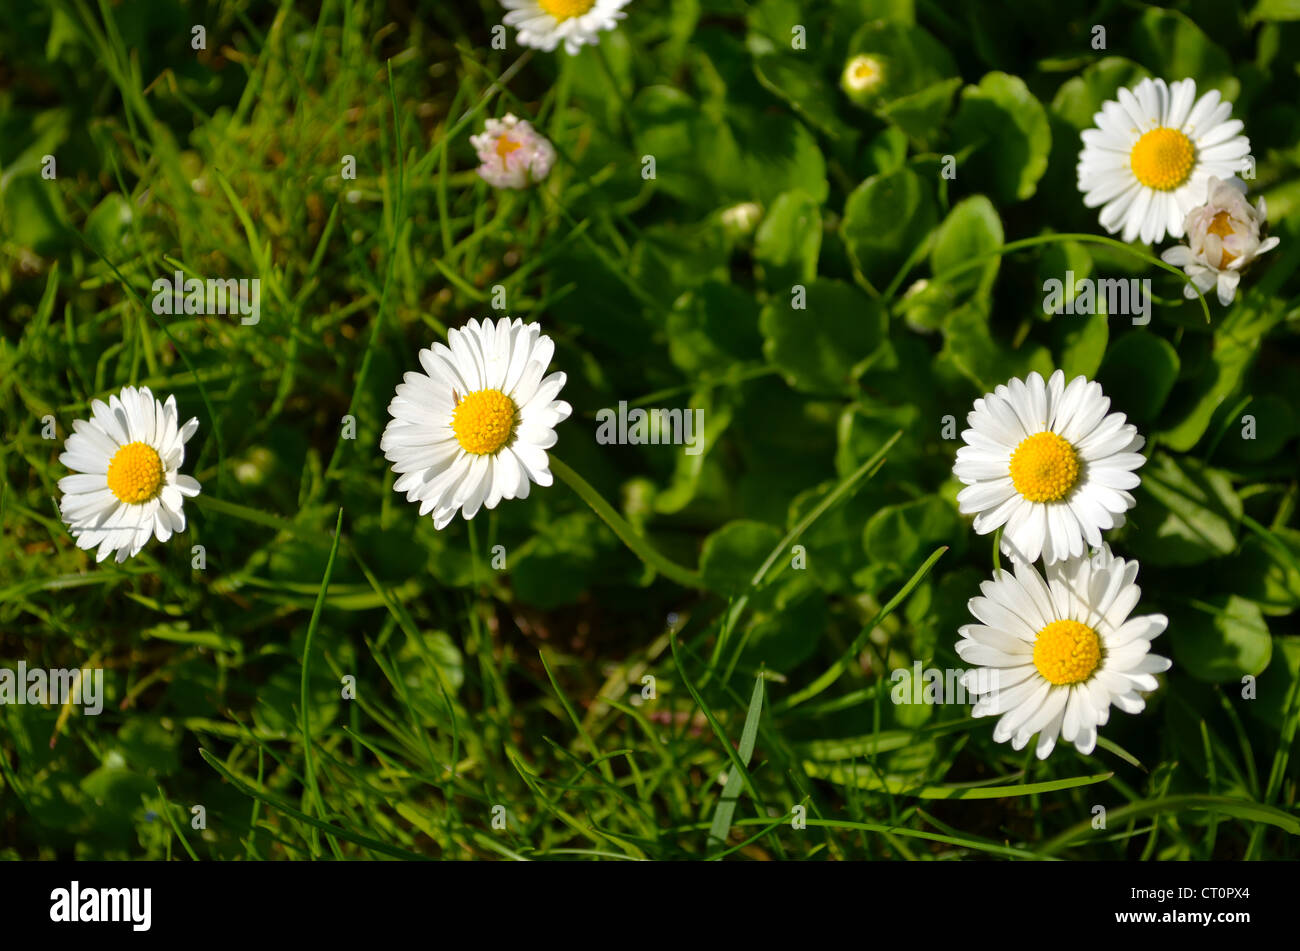 Closeup Of Small Sun Flowers With Yellow Middle With Lot White